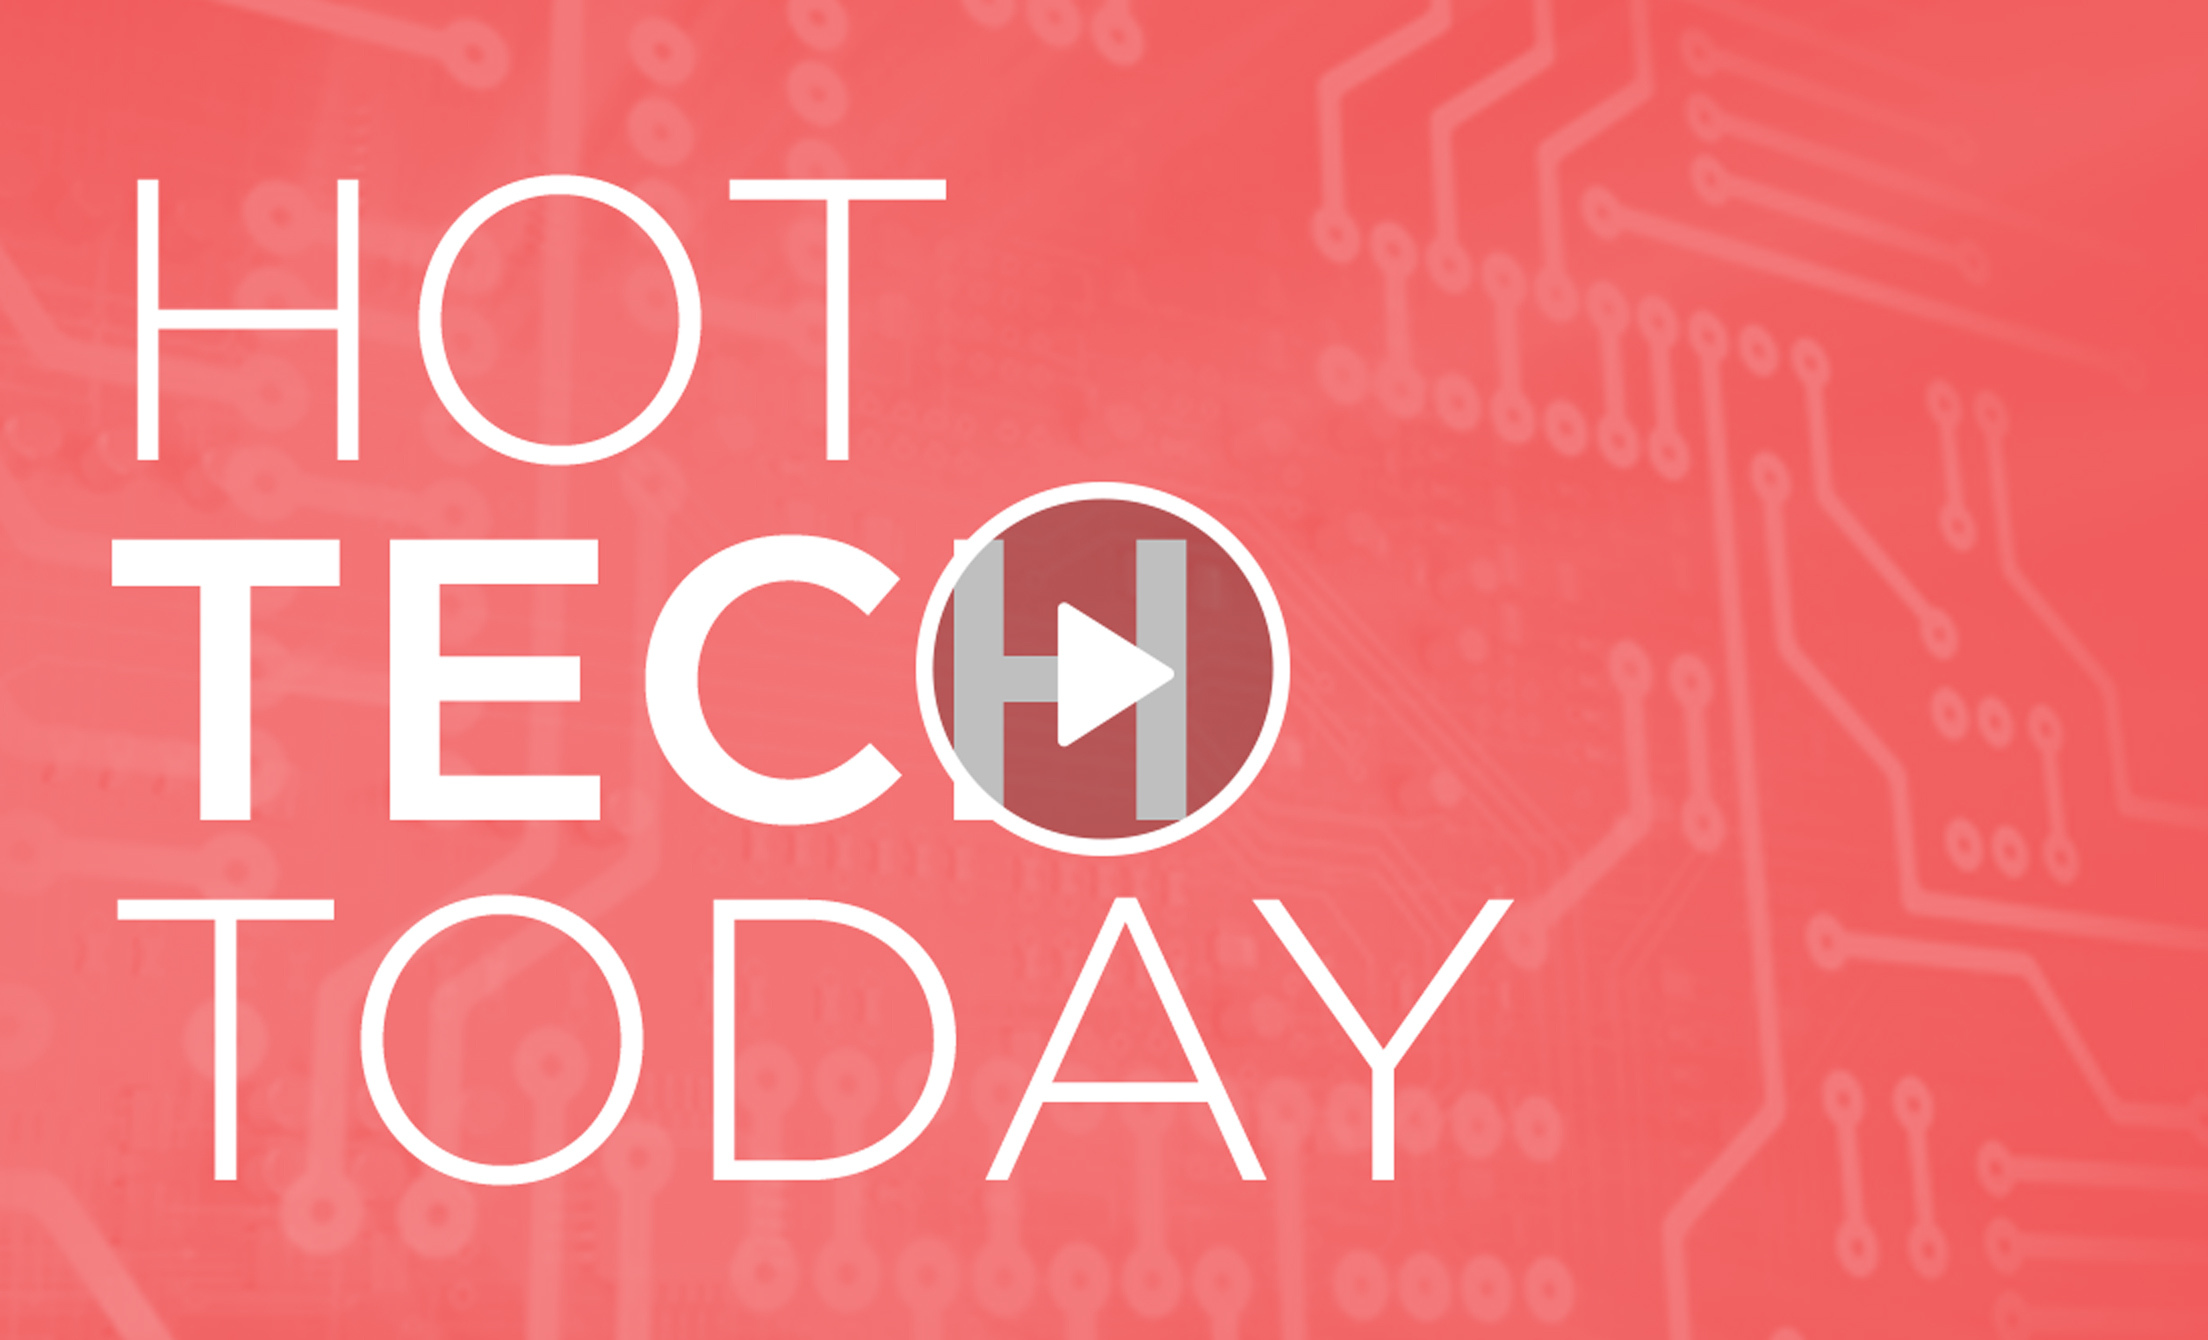 The Latest & Greatest. Watch this video for an inside look at sizzling technology innovations.